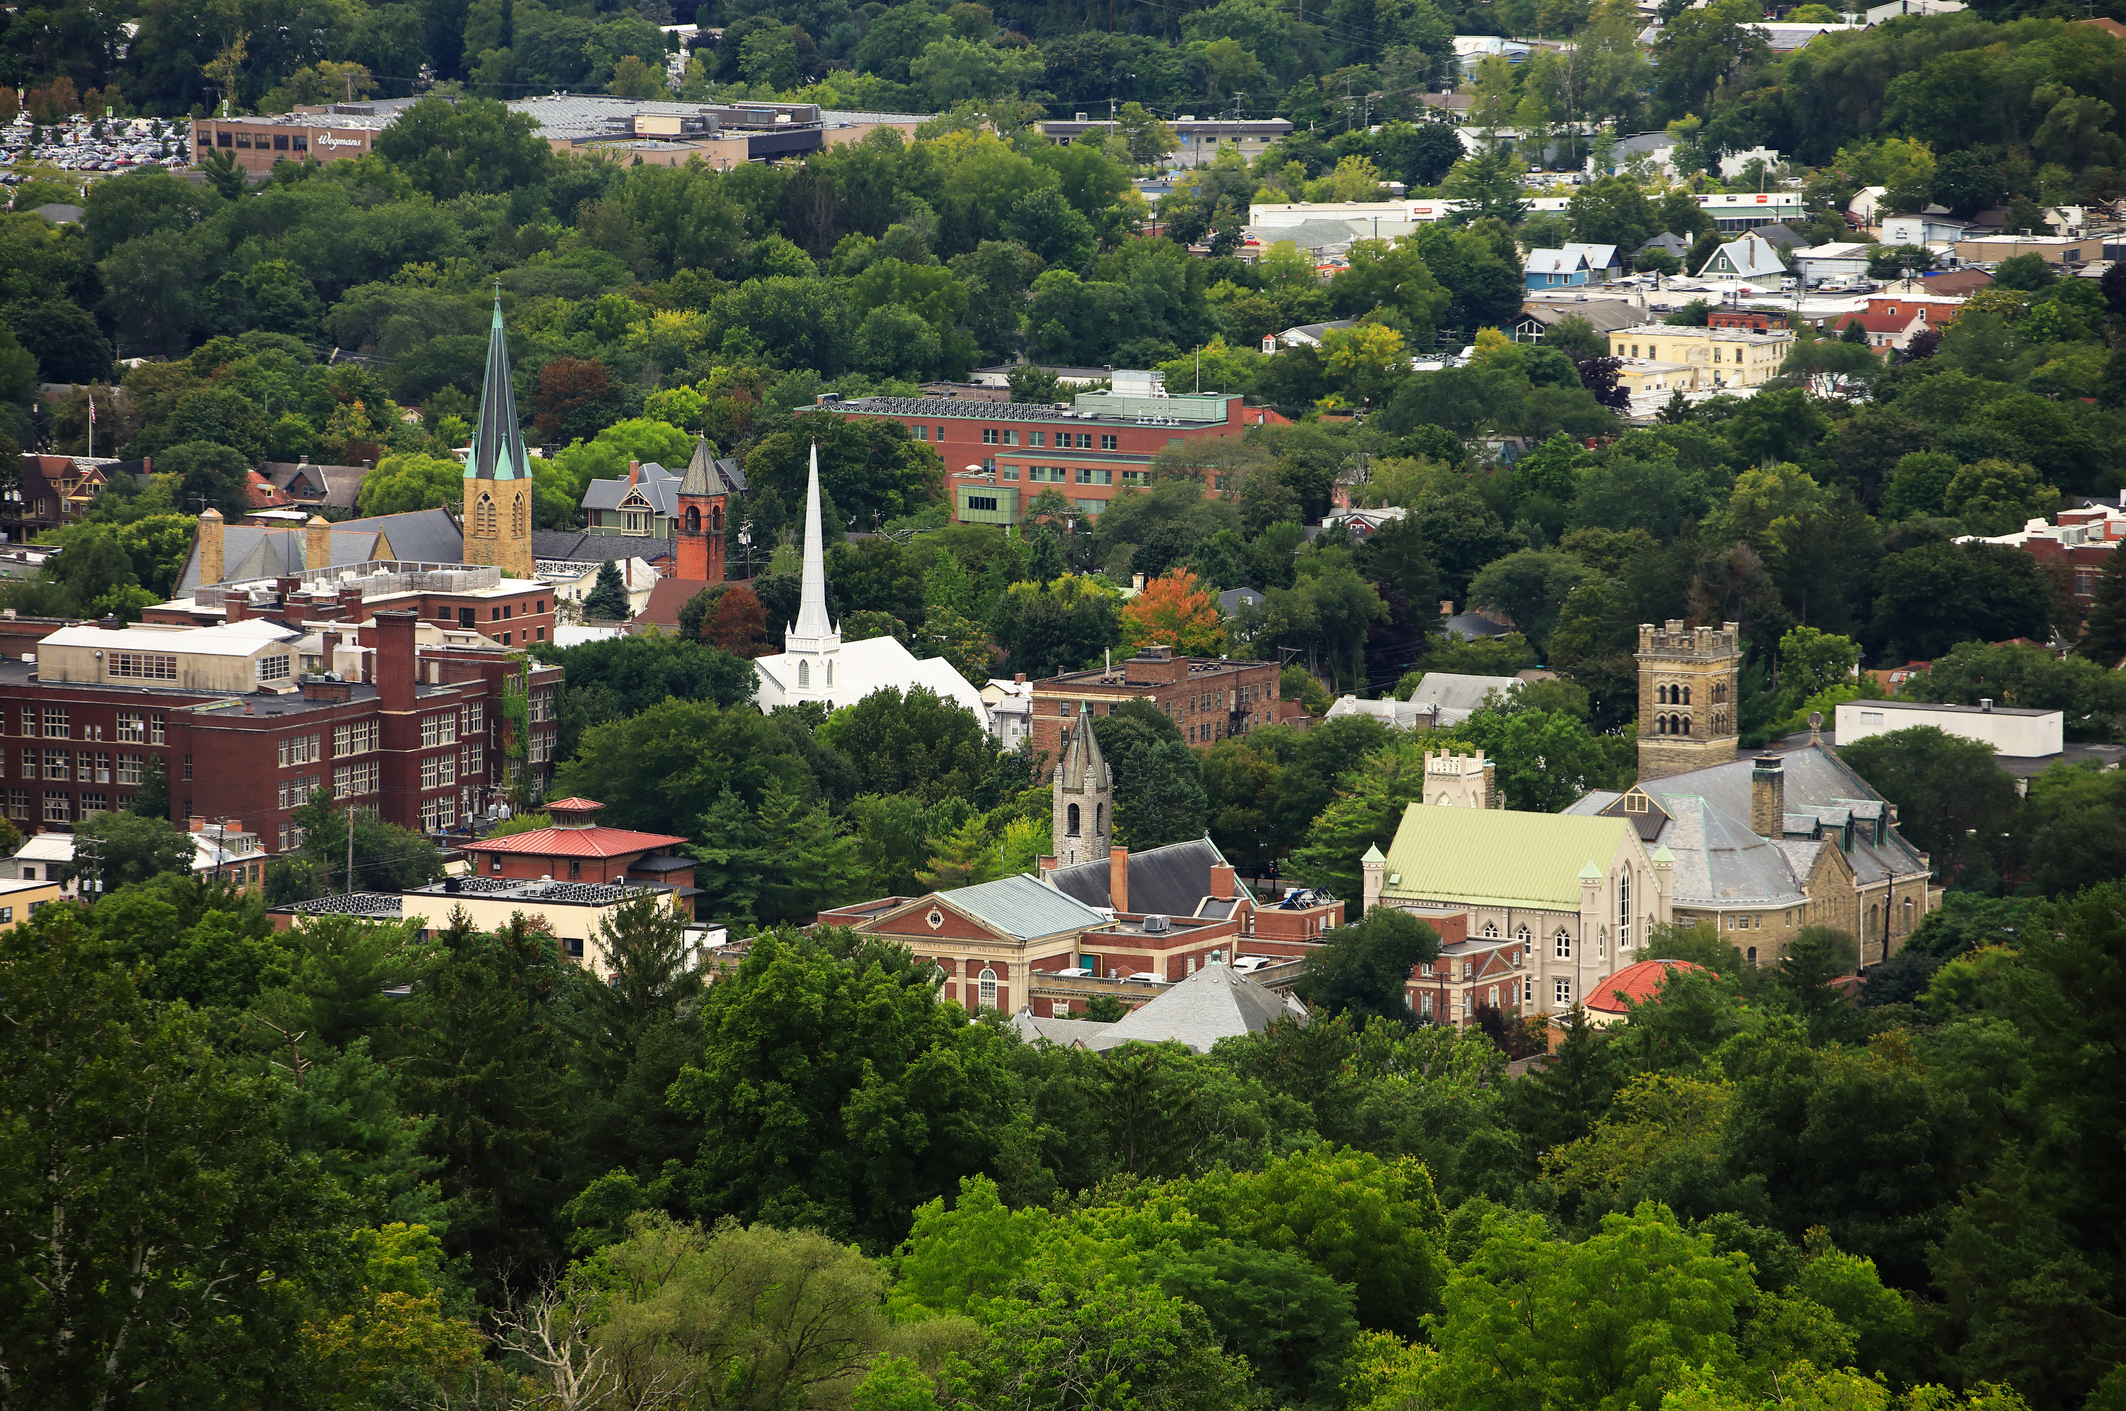 The aerial view of town of Ithaca in New York State